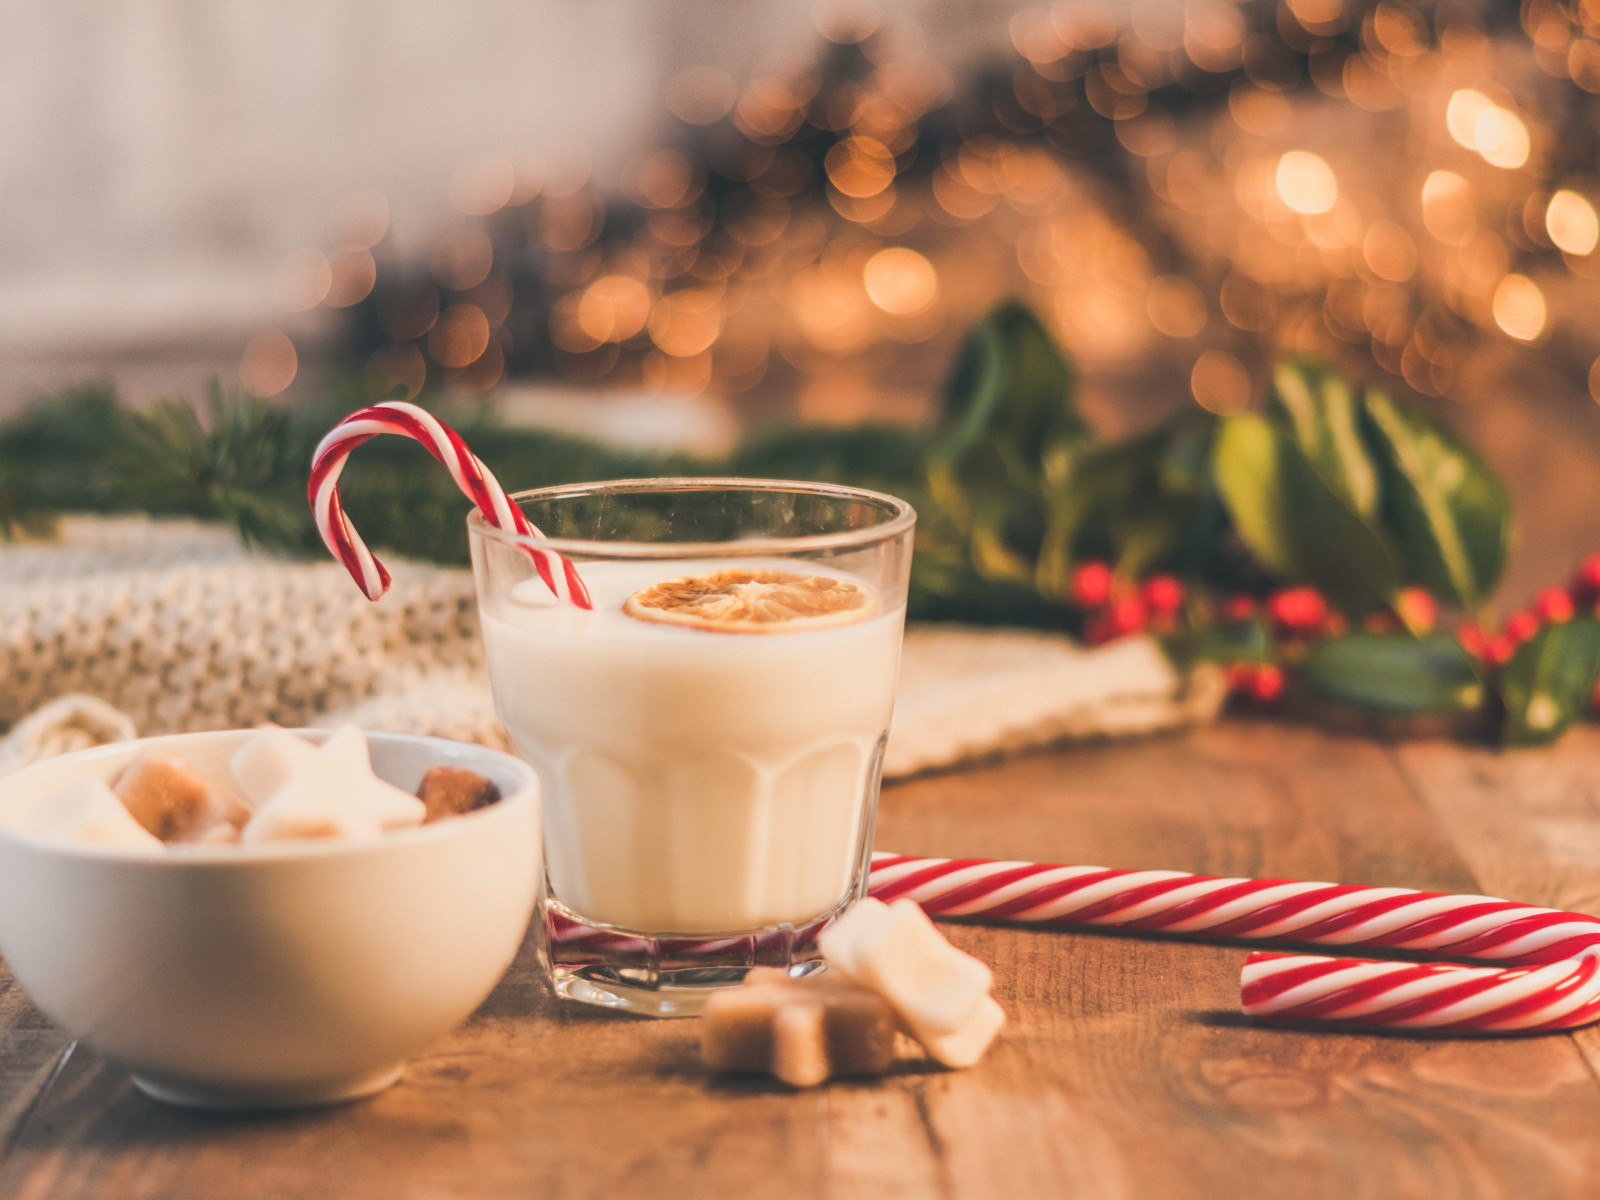 Seasonal Christmas sweets and cup of milk wallpaper 1600x1200